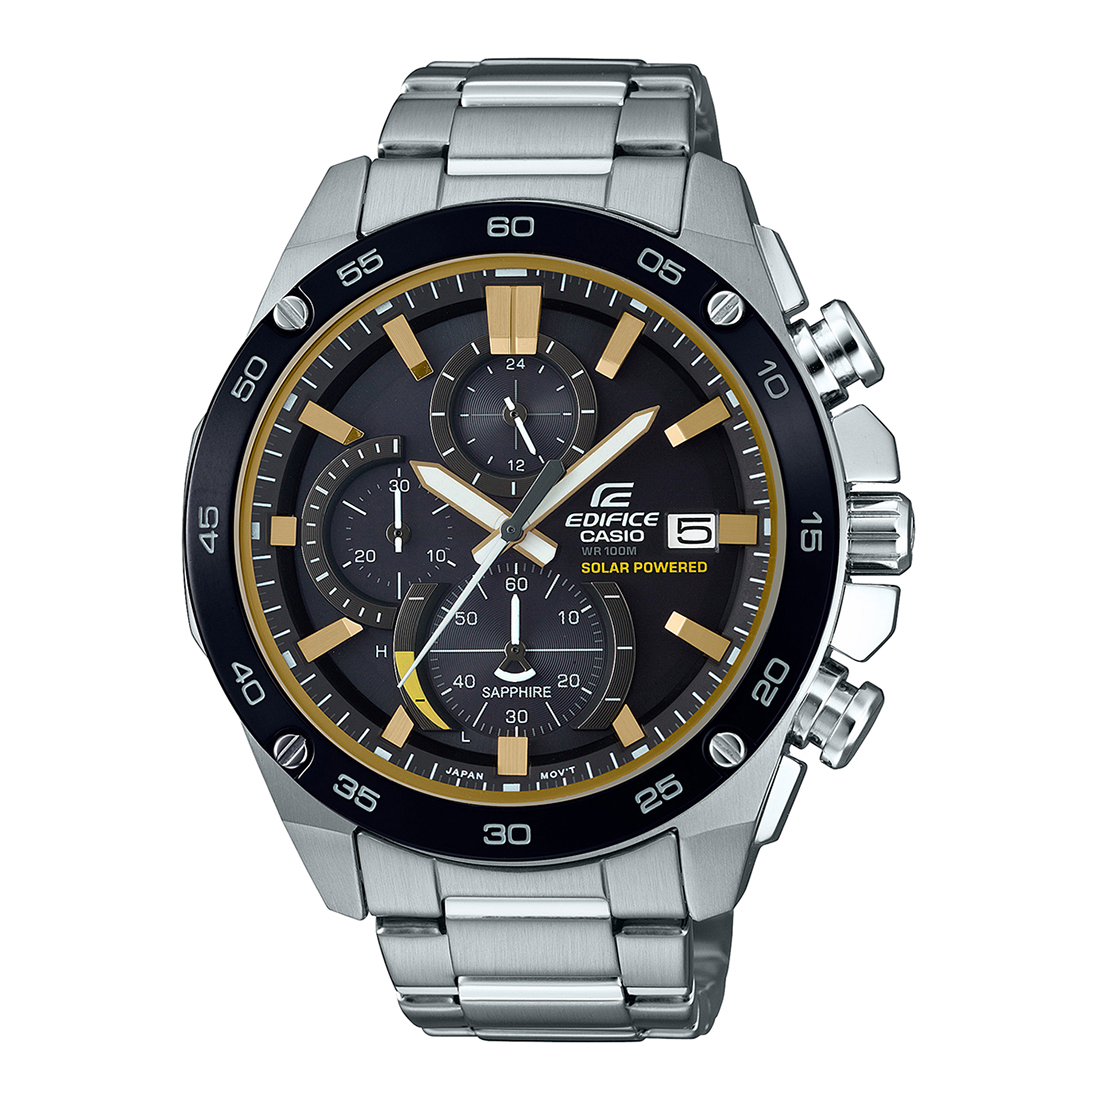 ex465 efs-s500db-1bvudf edifice watch-EX465